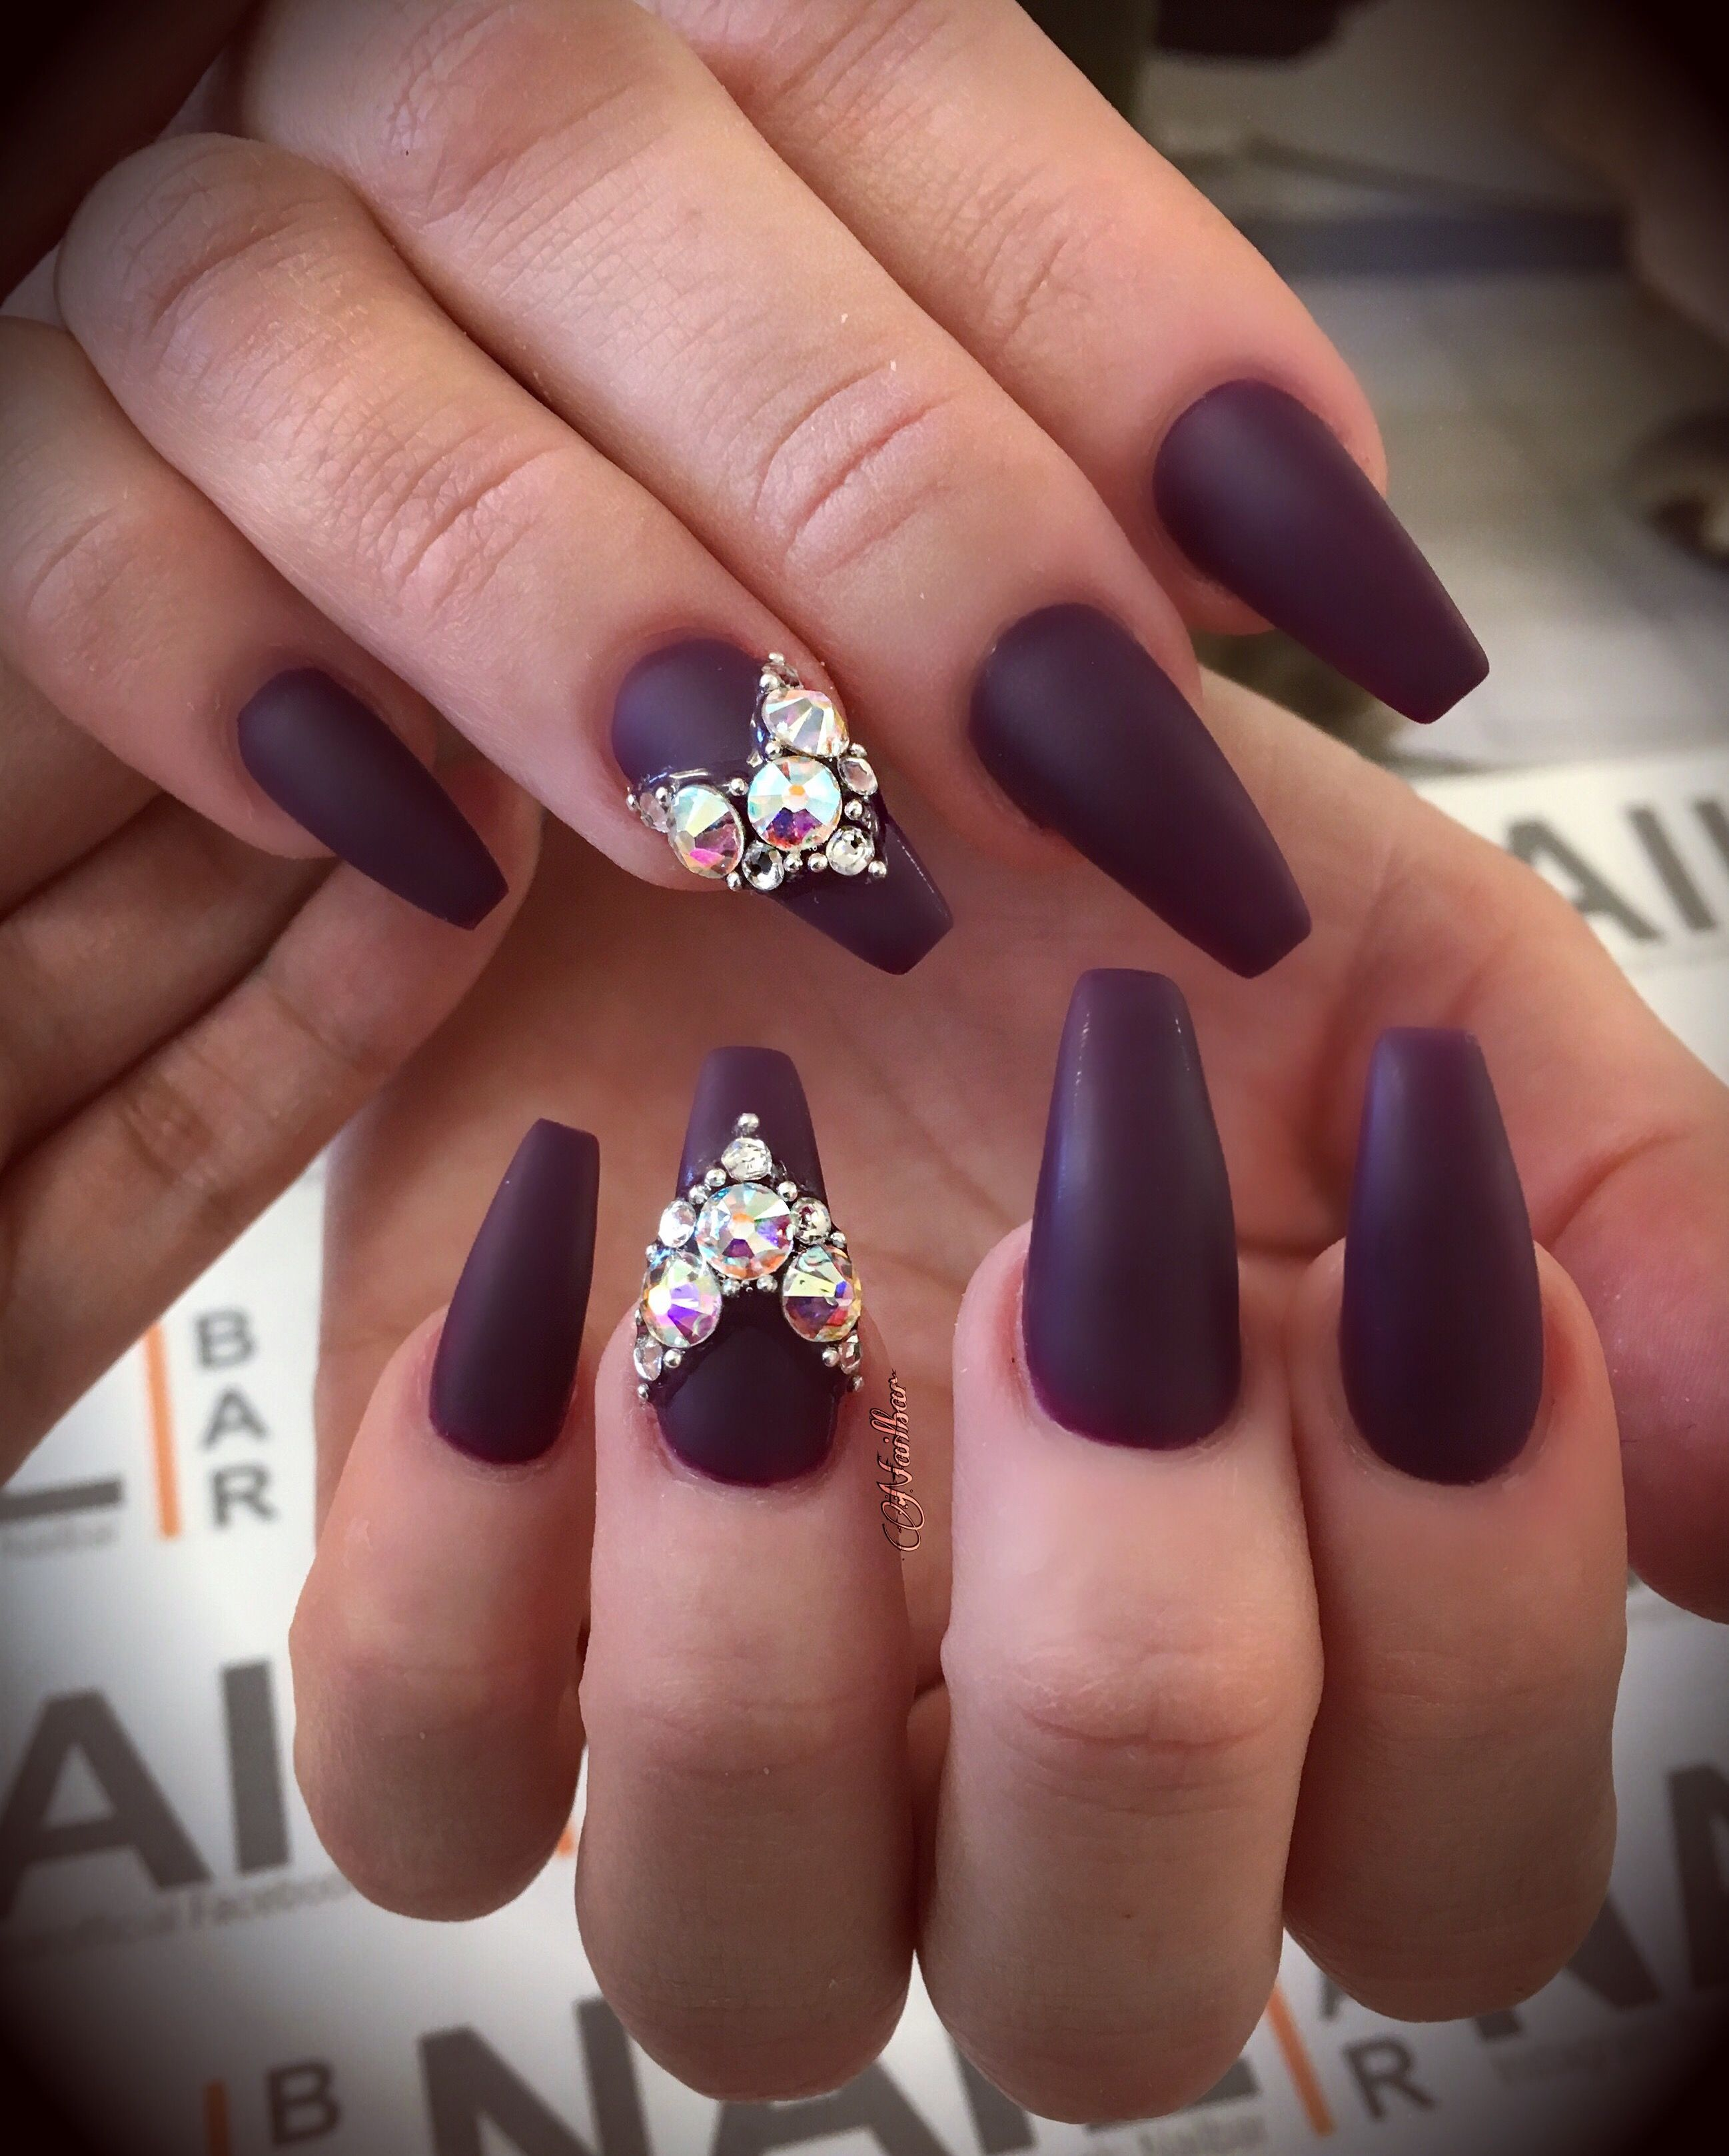 Pin by Valerie Okeefe on fancy nails rhinestones | Pinterest | Nail ...